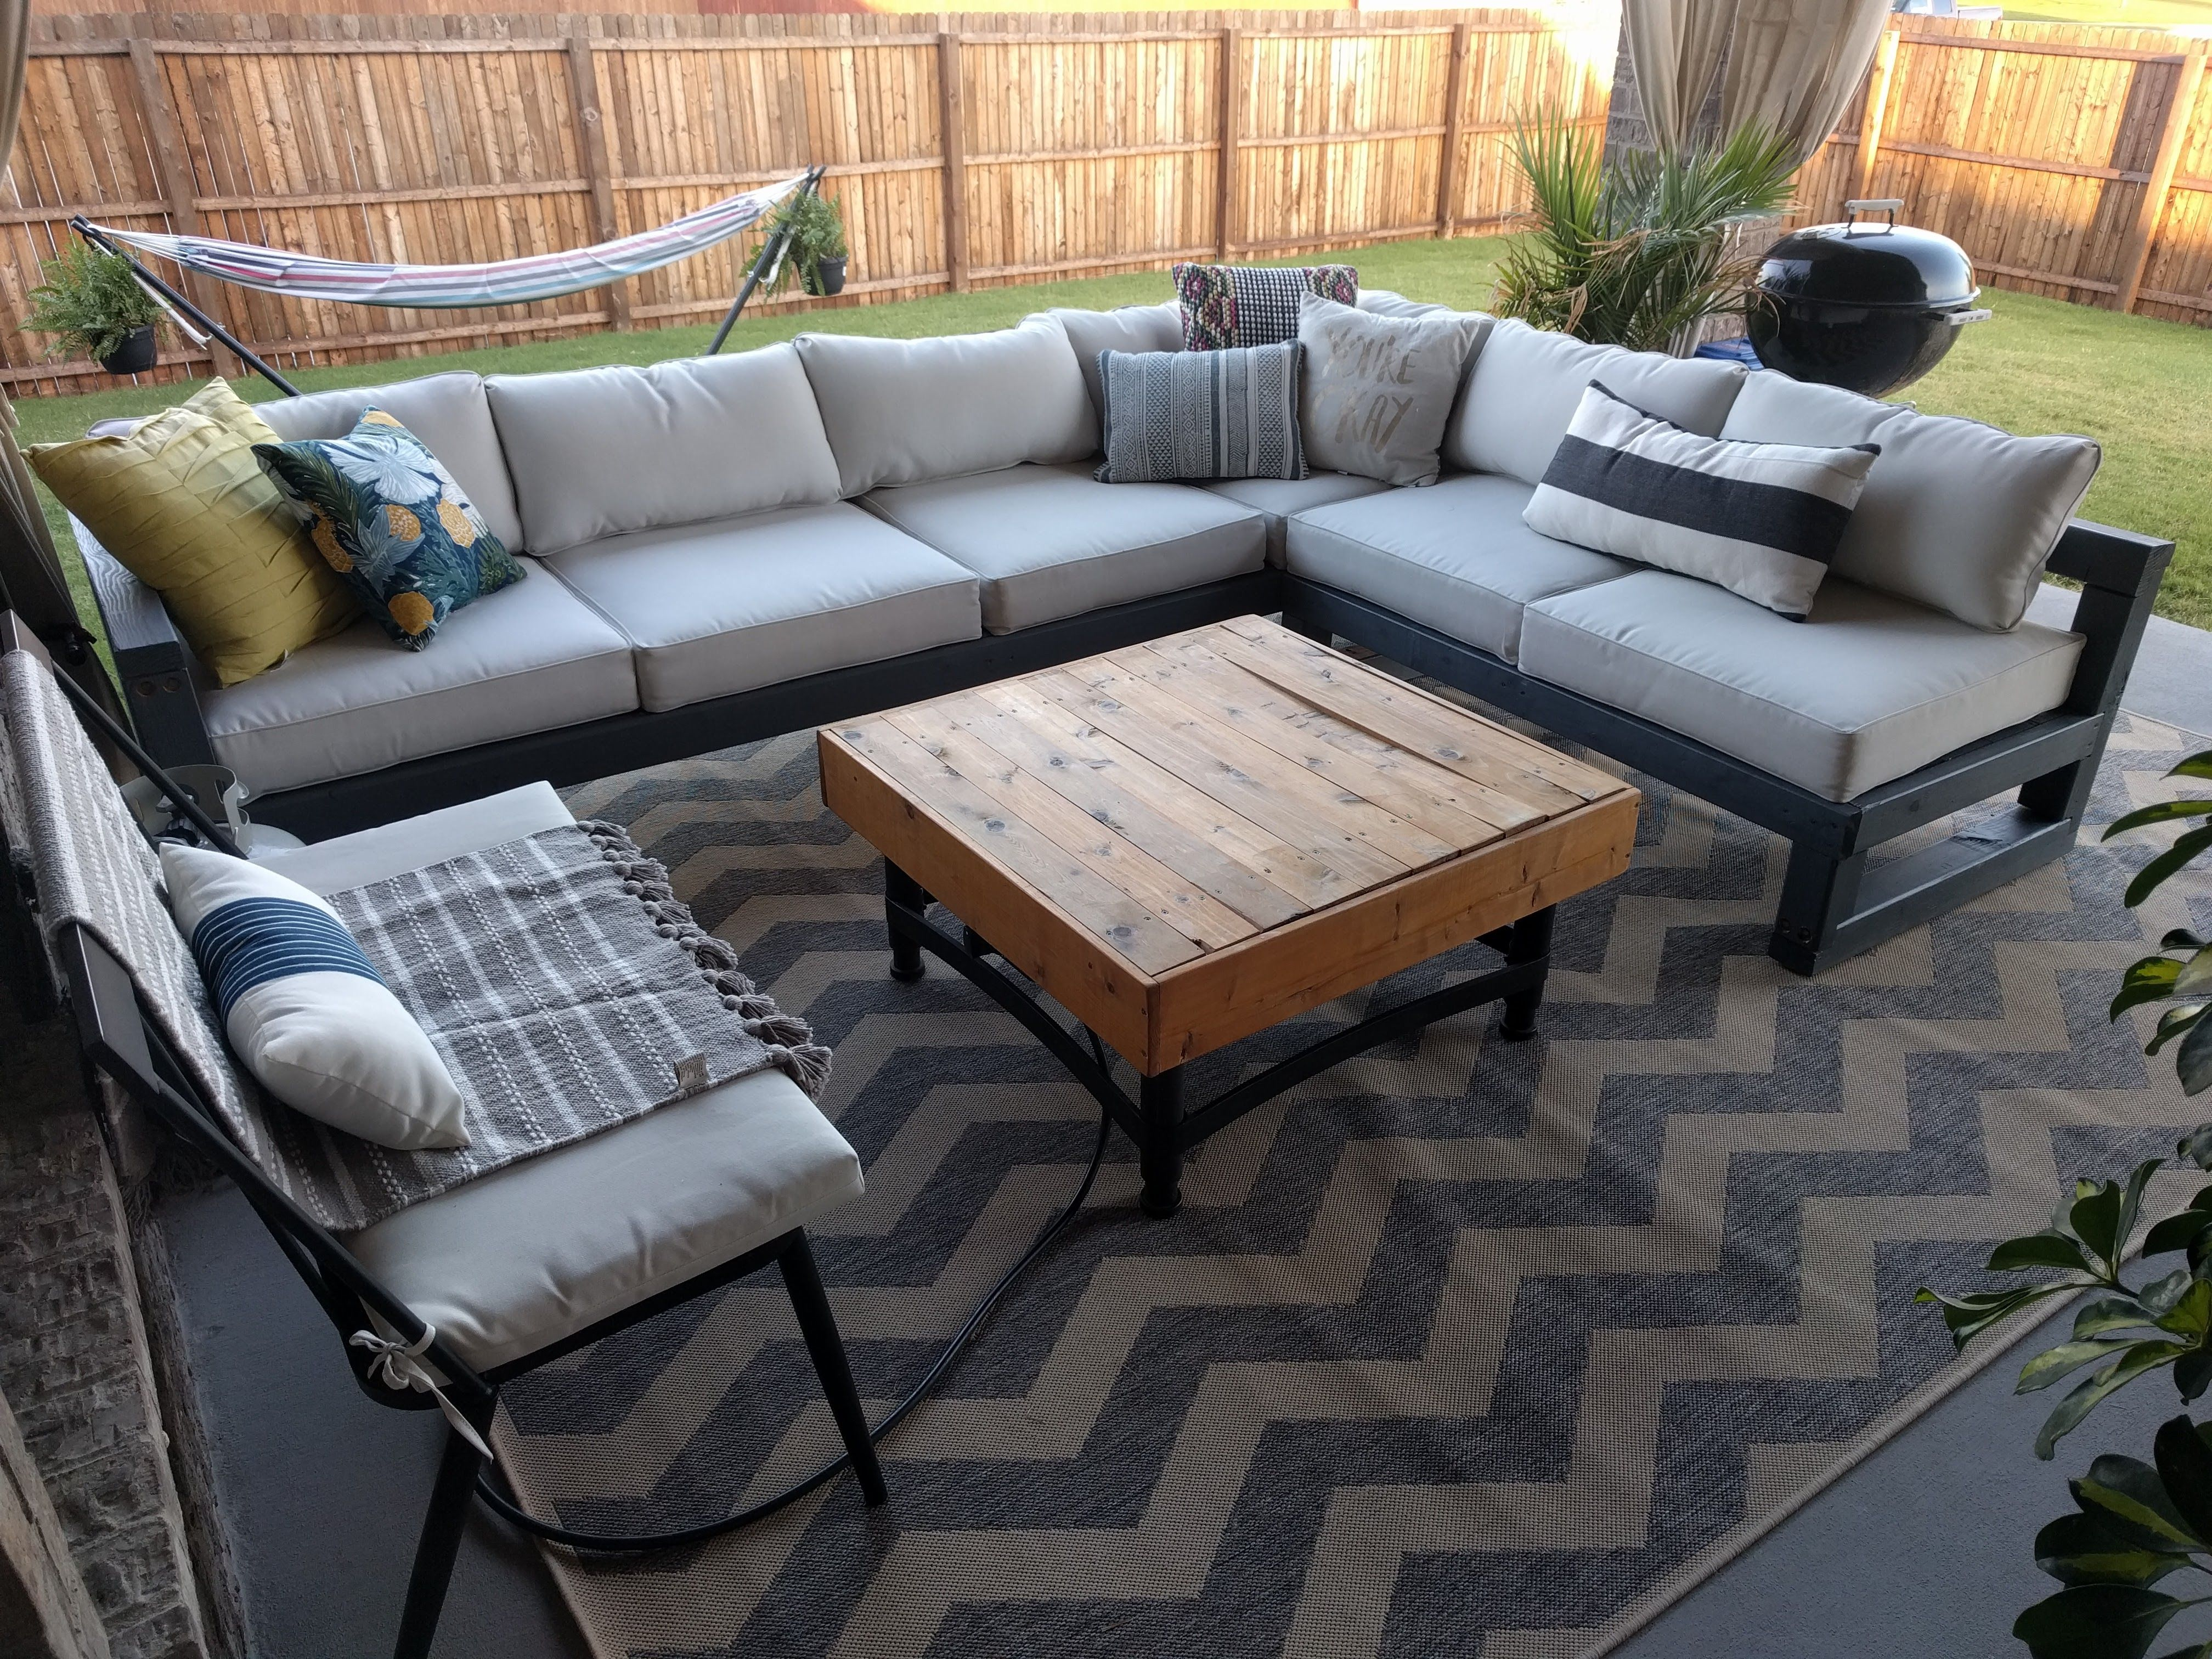 I made my wife a sturdy outdoor sectional out of cheap